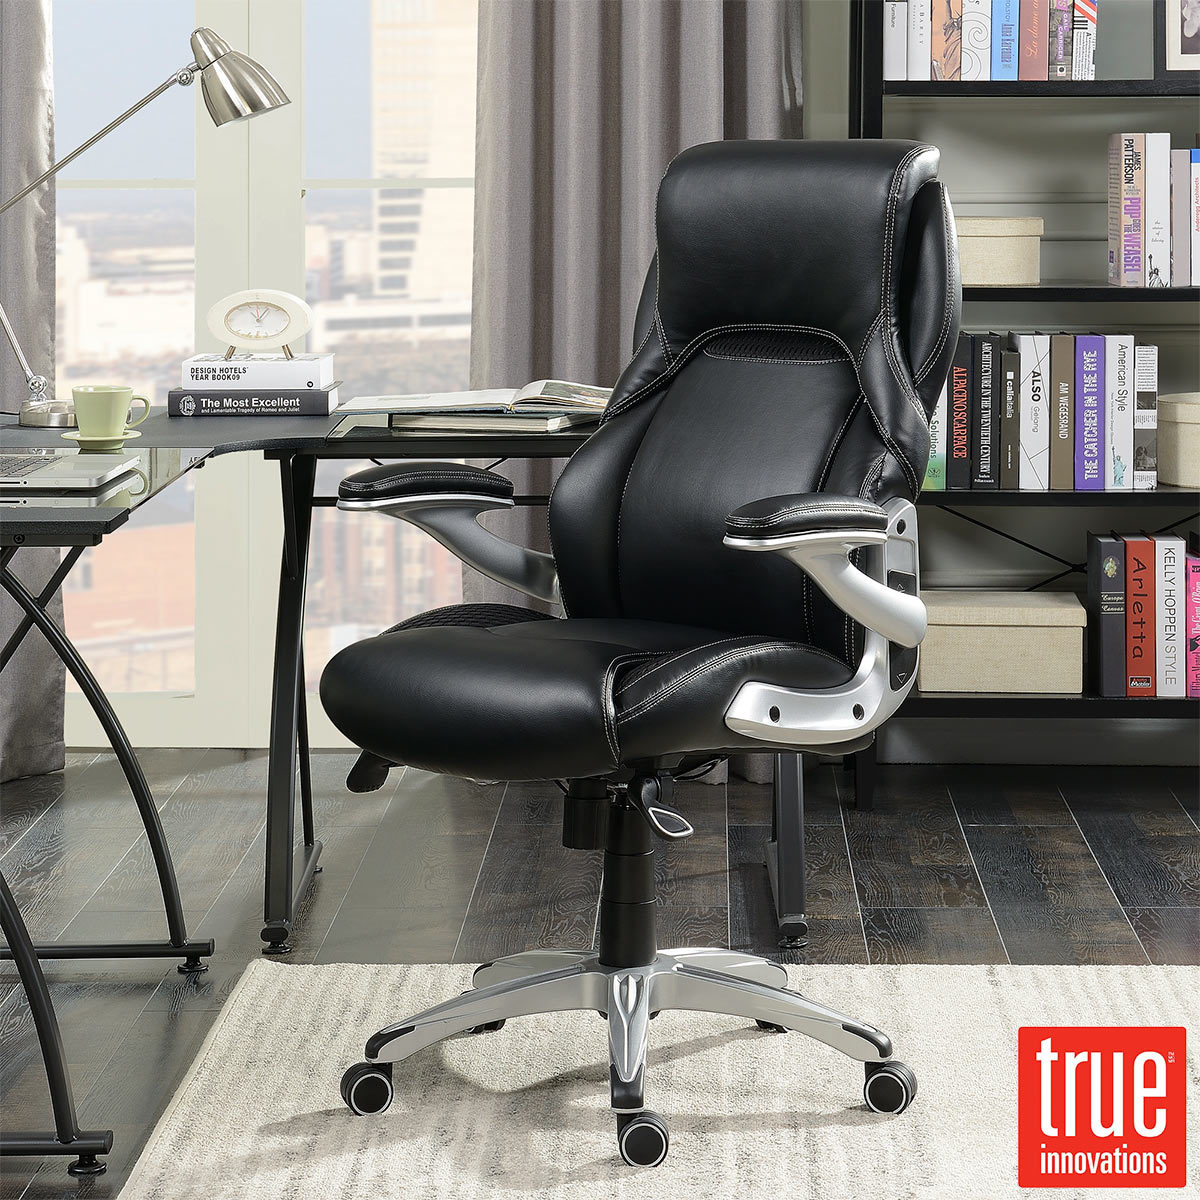 Costco Office Chairs In Store True Innovations Black Bonded Leather Managers Chair Costco Uk